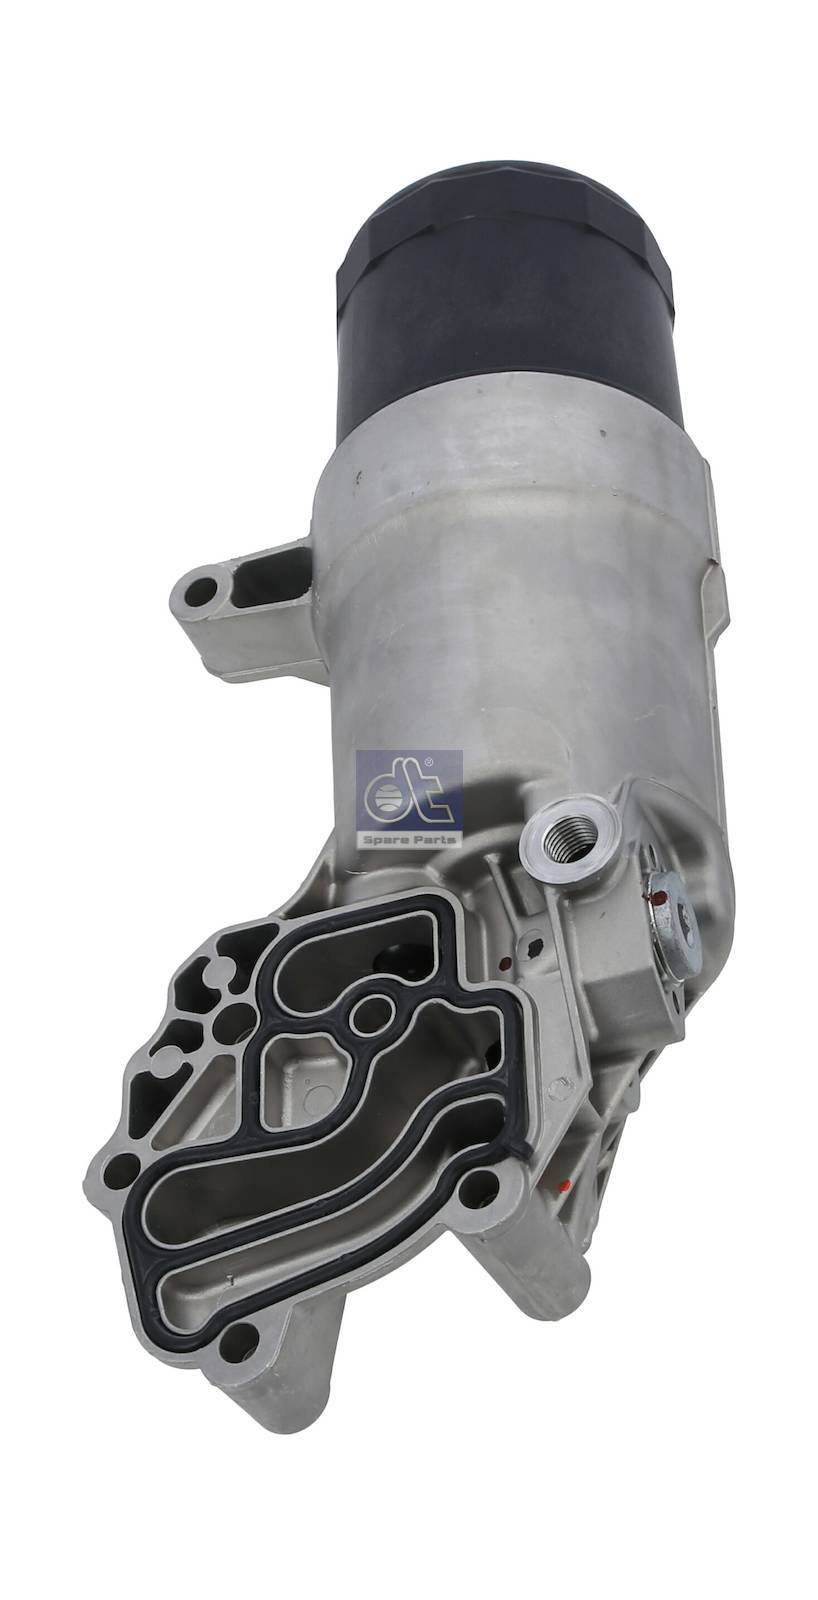 DT 4 64911 Oil filter housing, complete 9061801710 suitable for